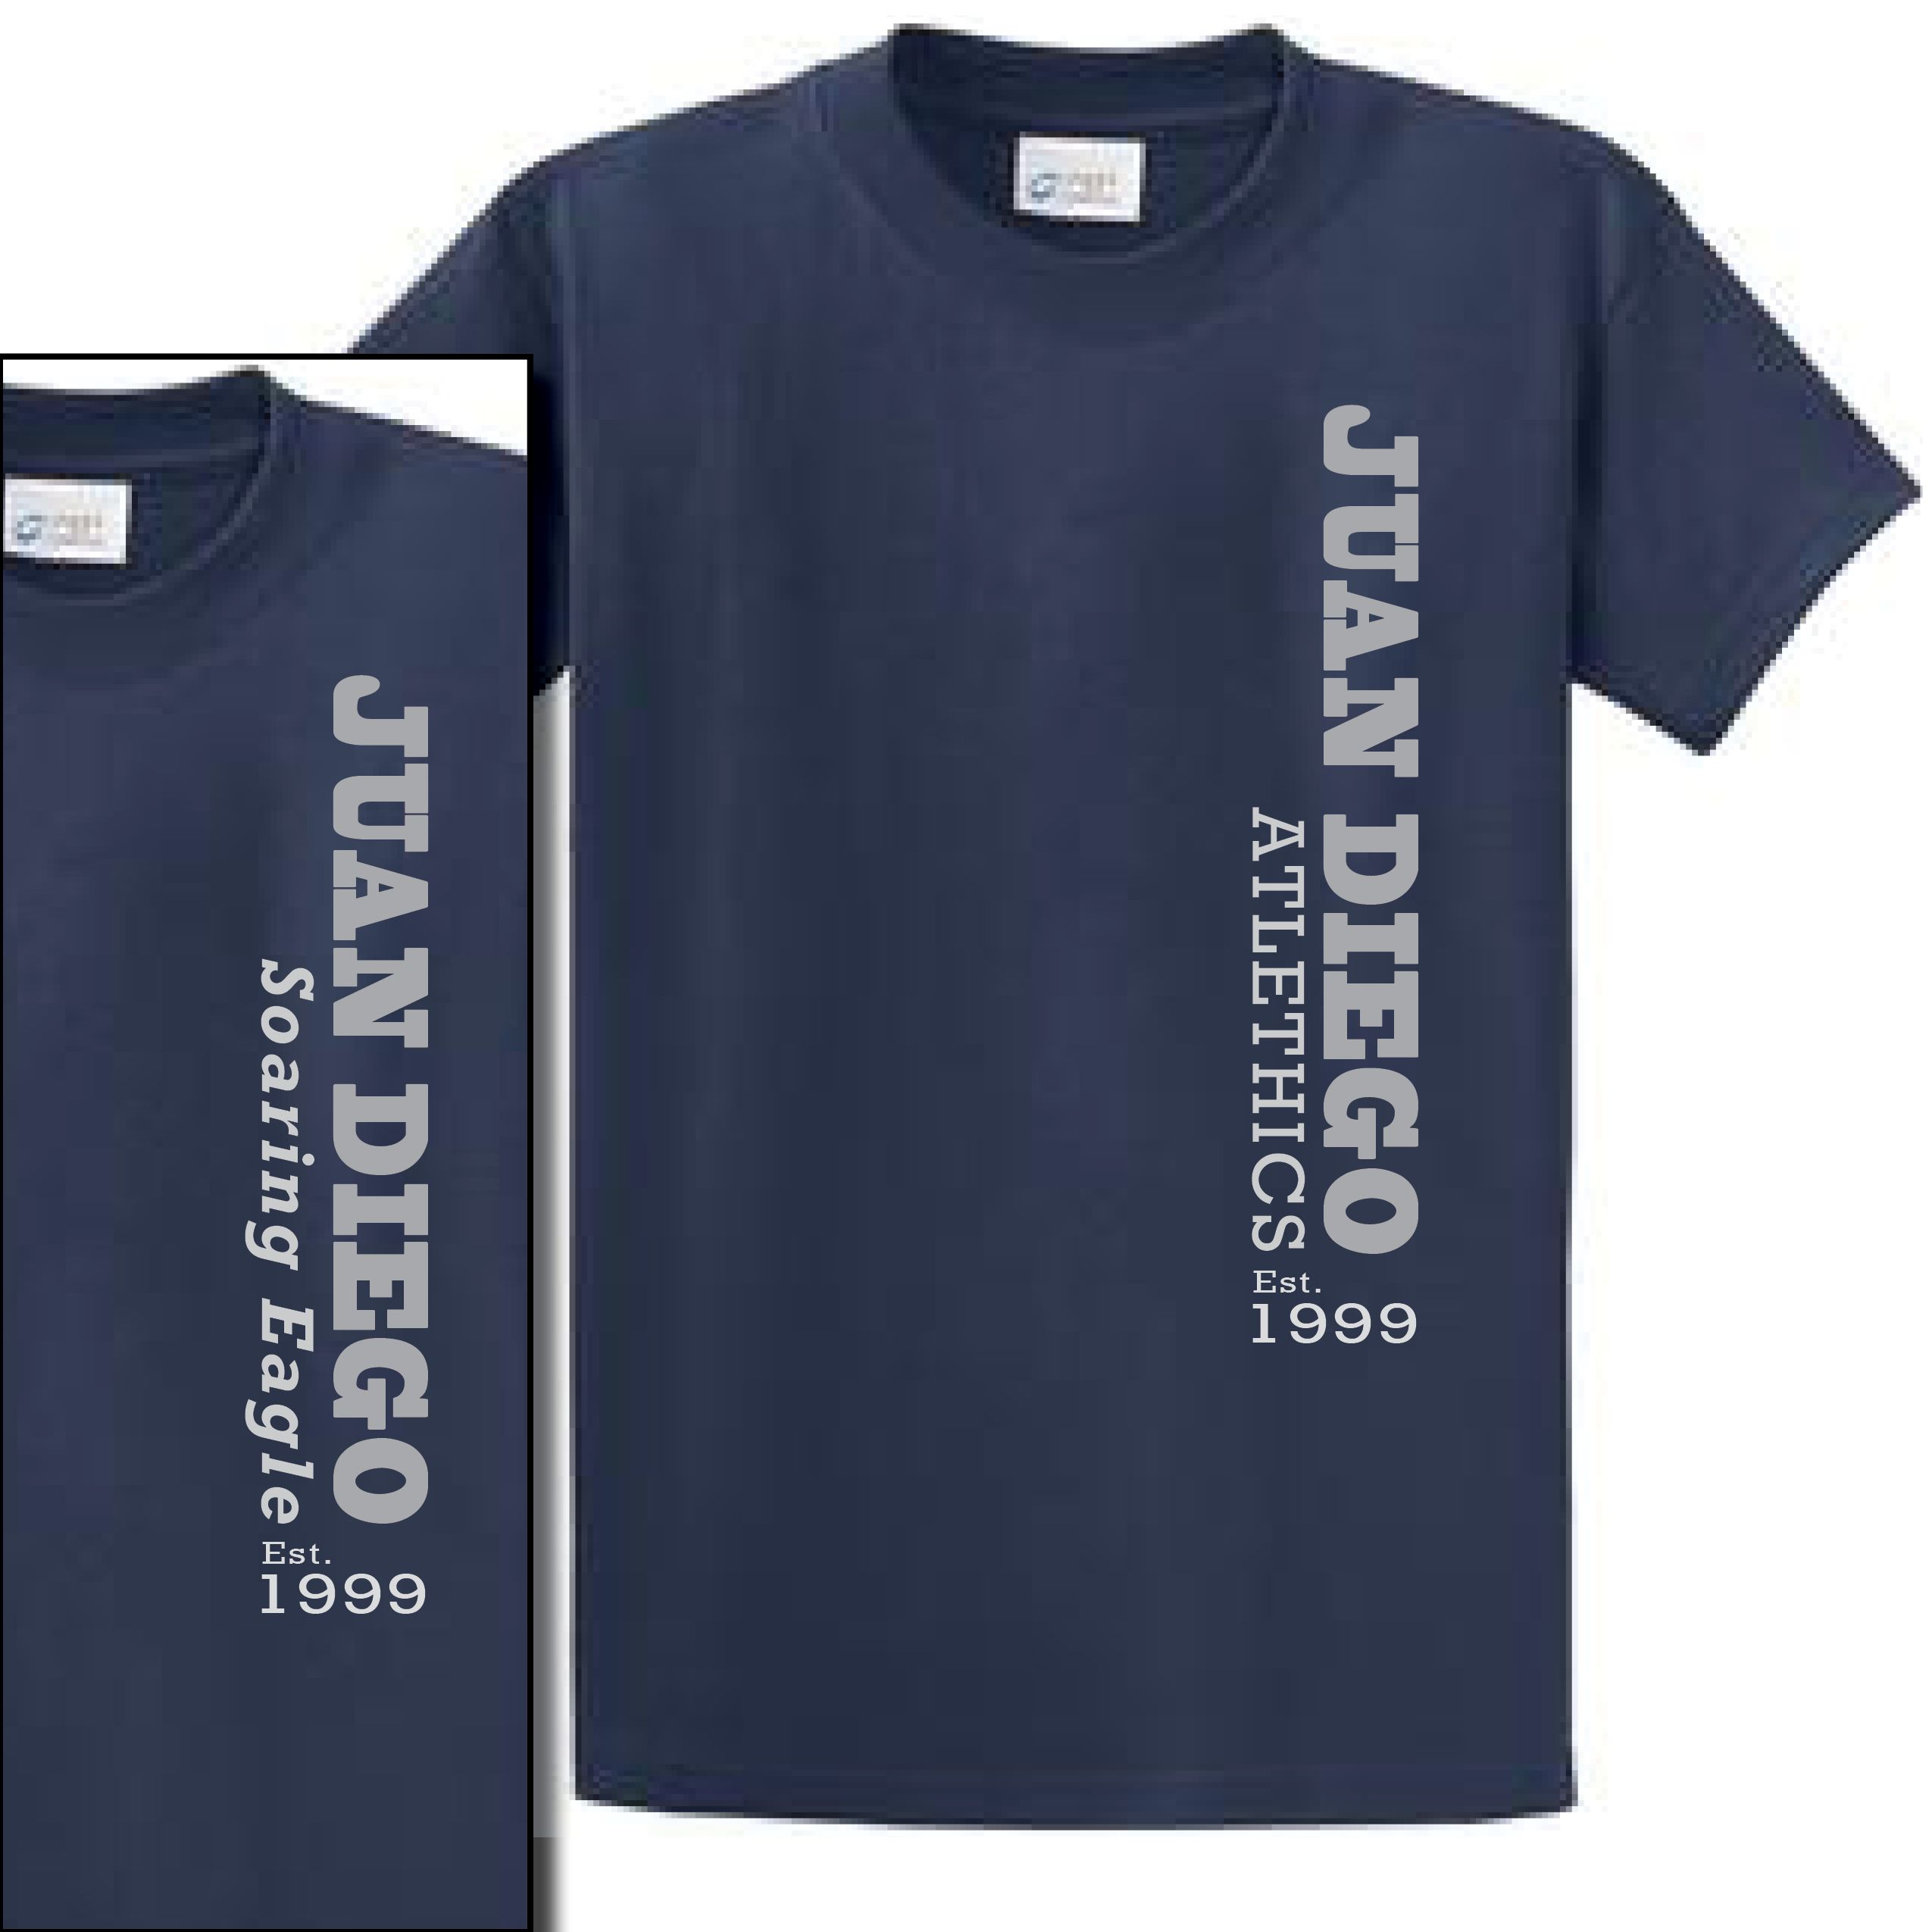 T Shirt Design Ideas For Schools 10 school t shirt ideas 8 High School Athletic T Shirt Design Ideas